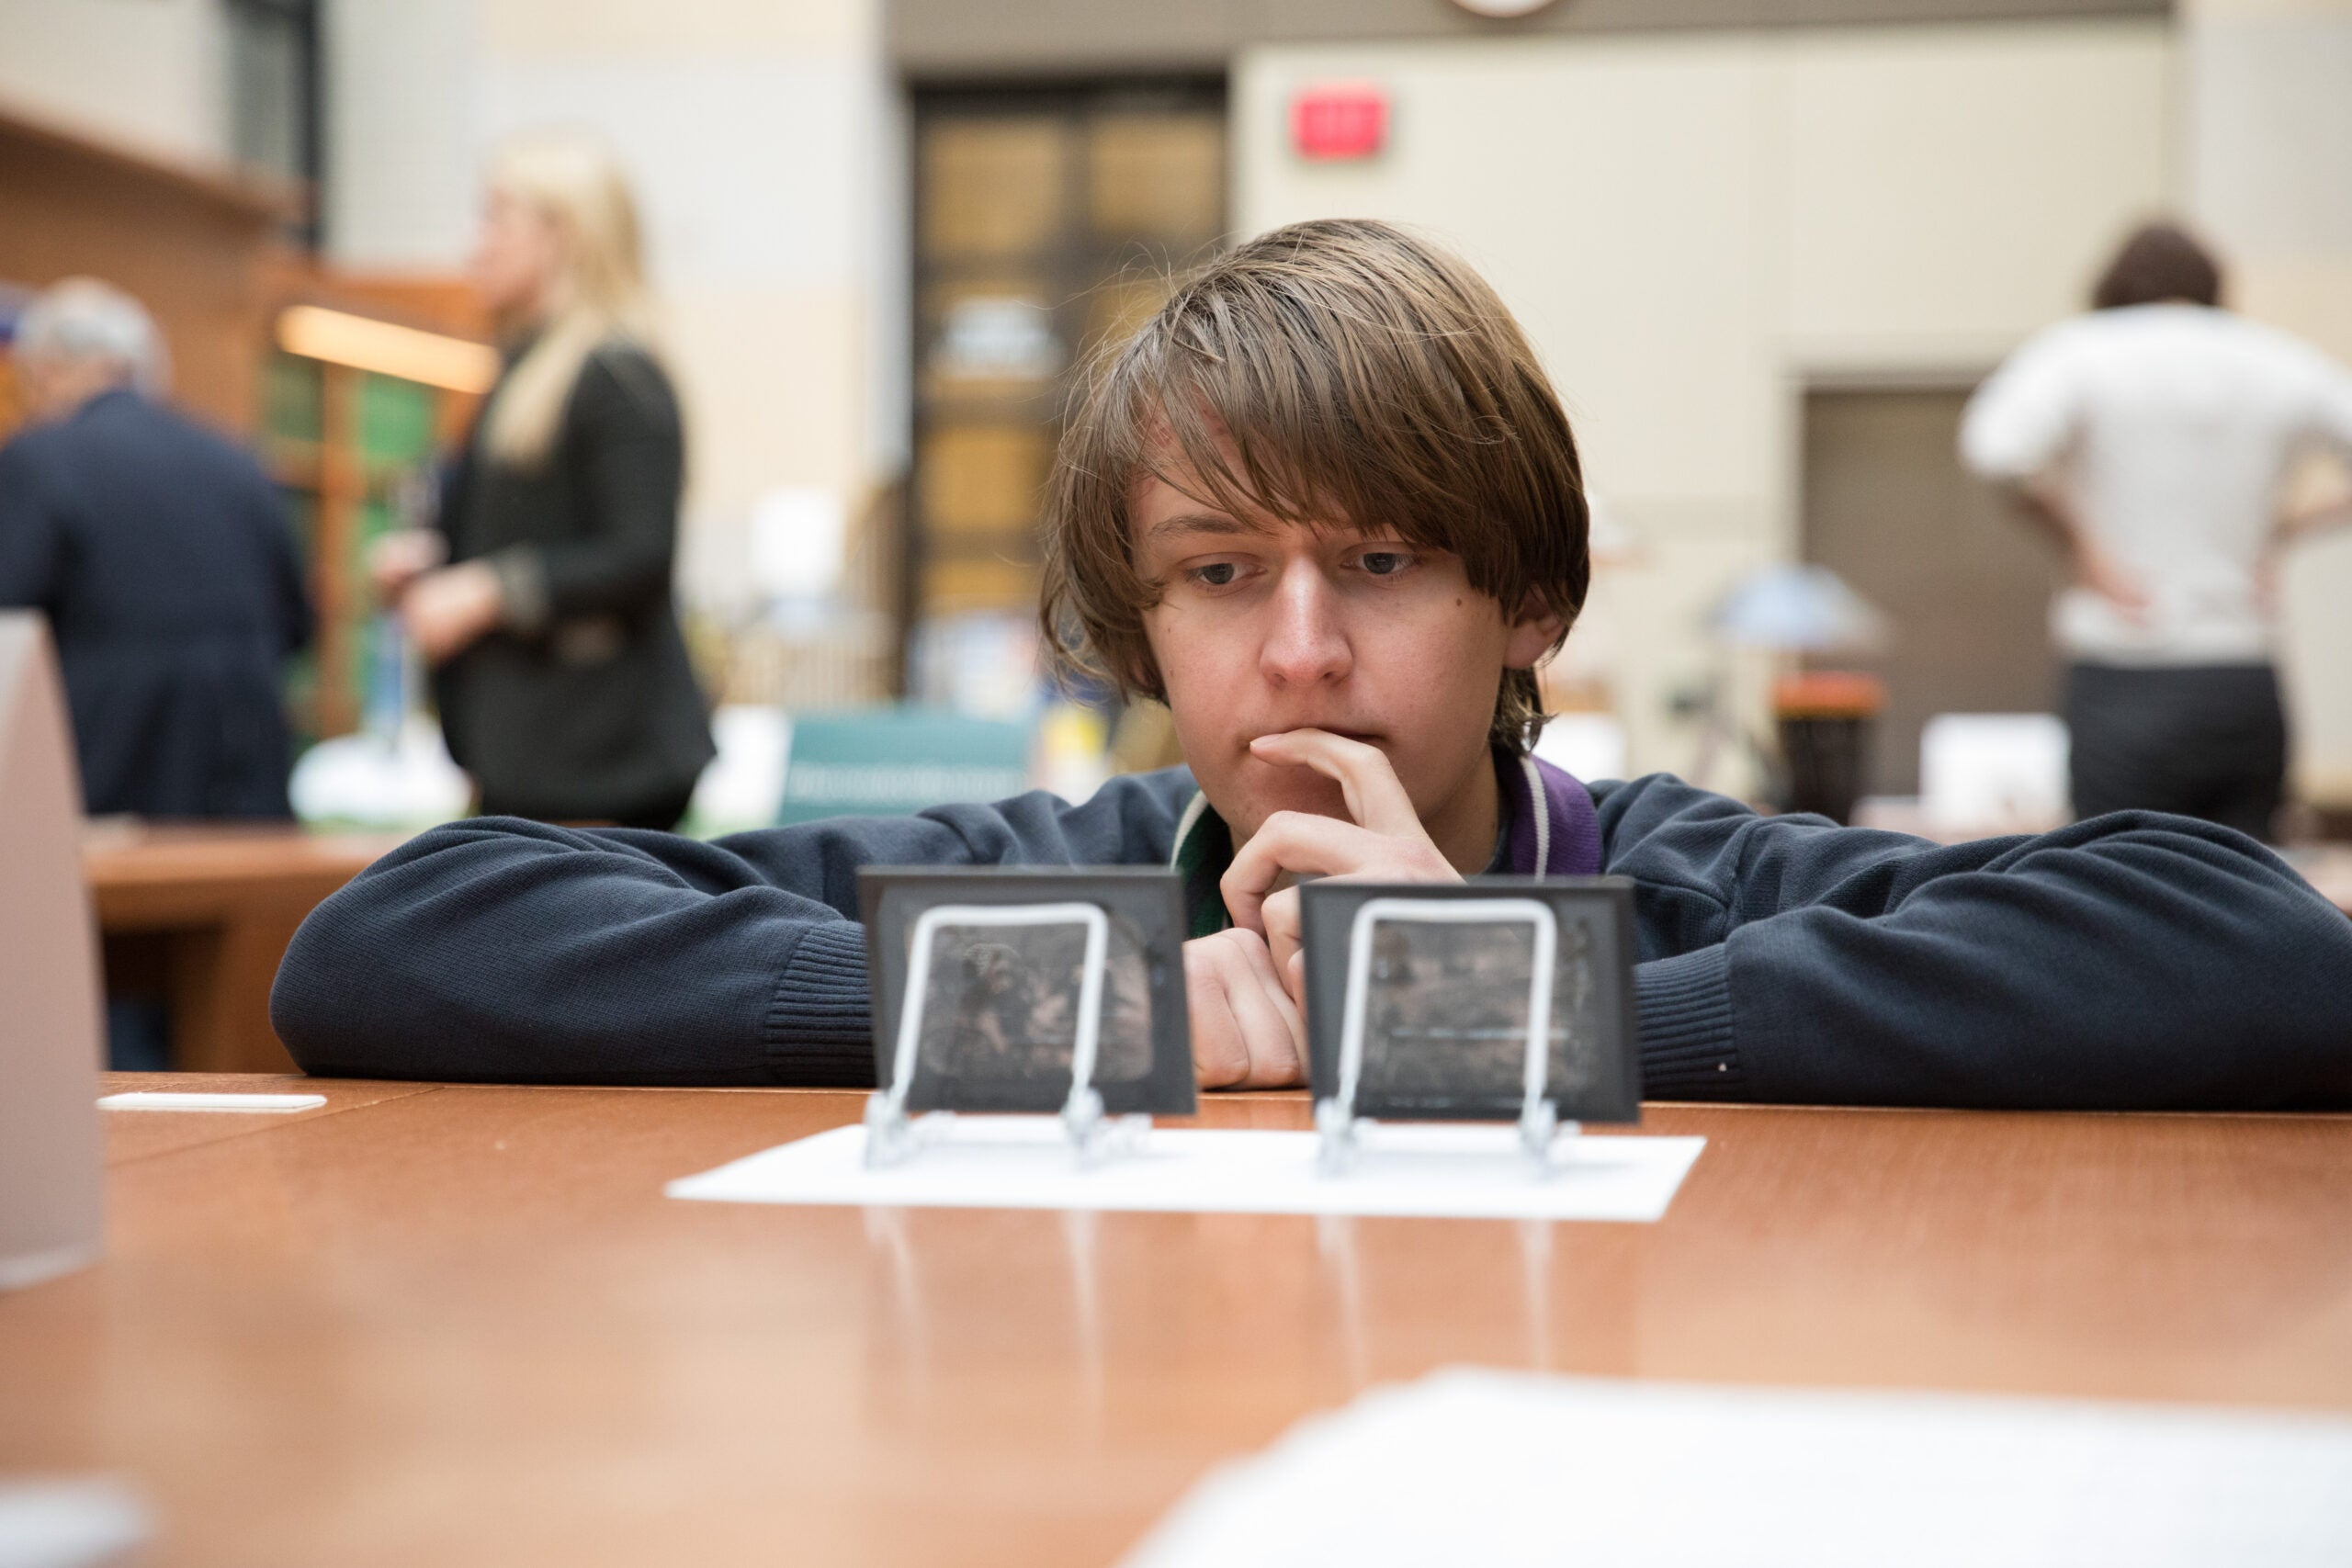 A student looks at glass slides.